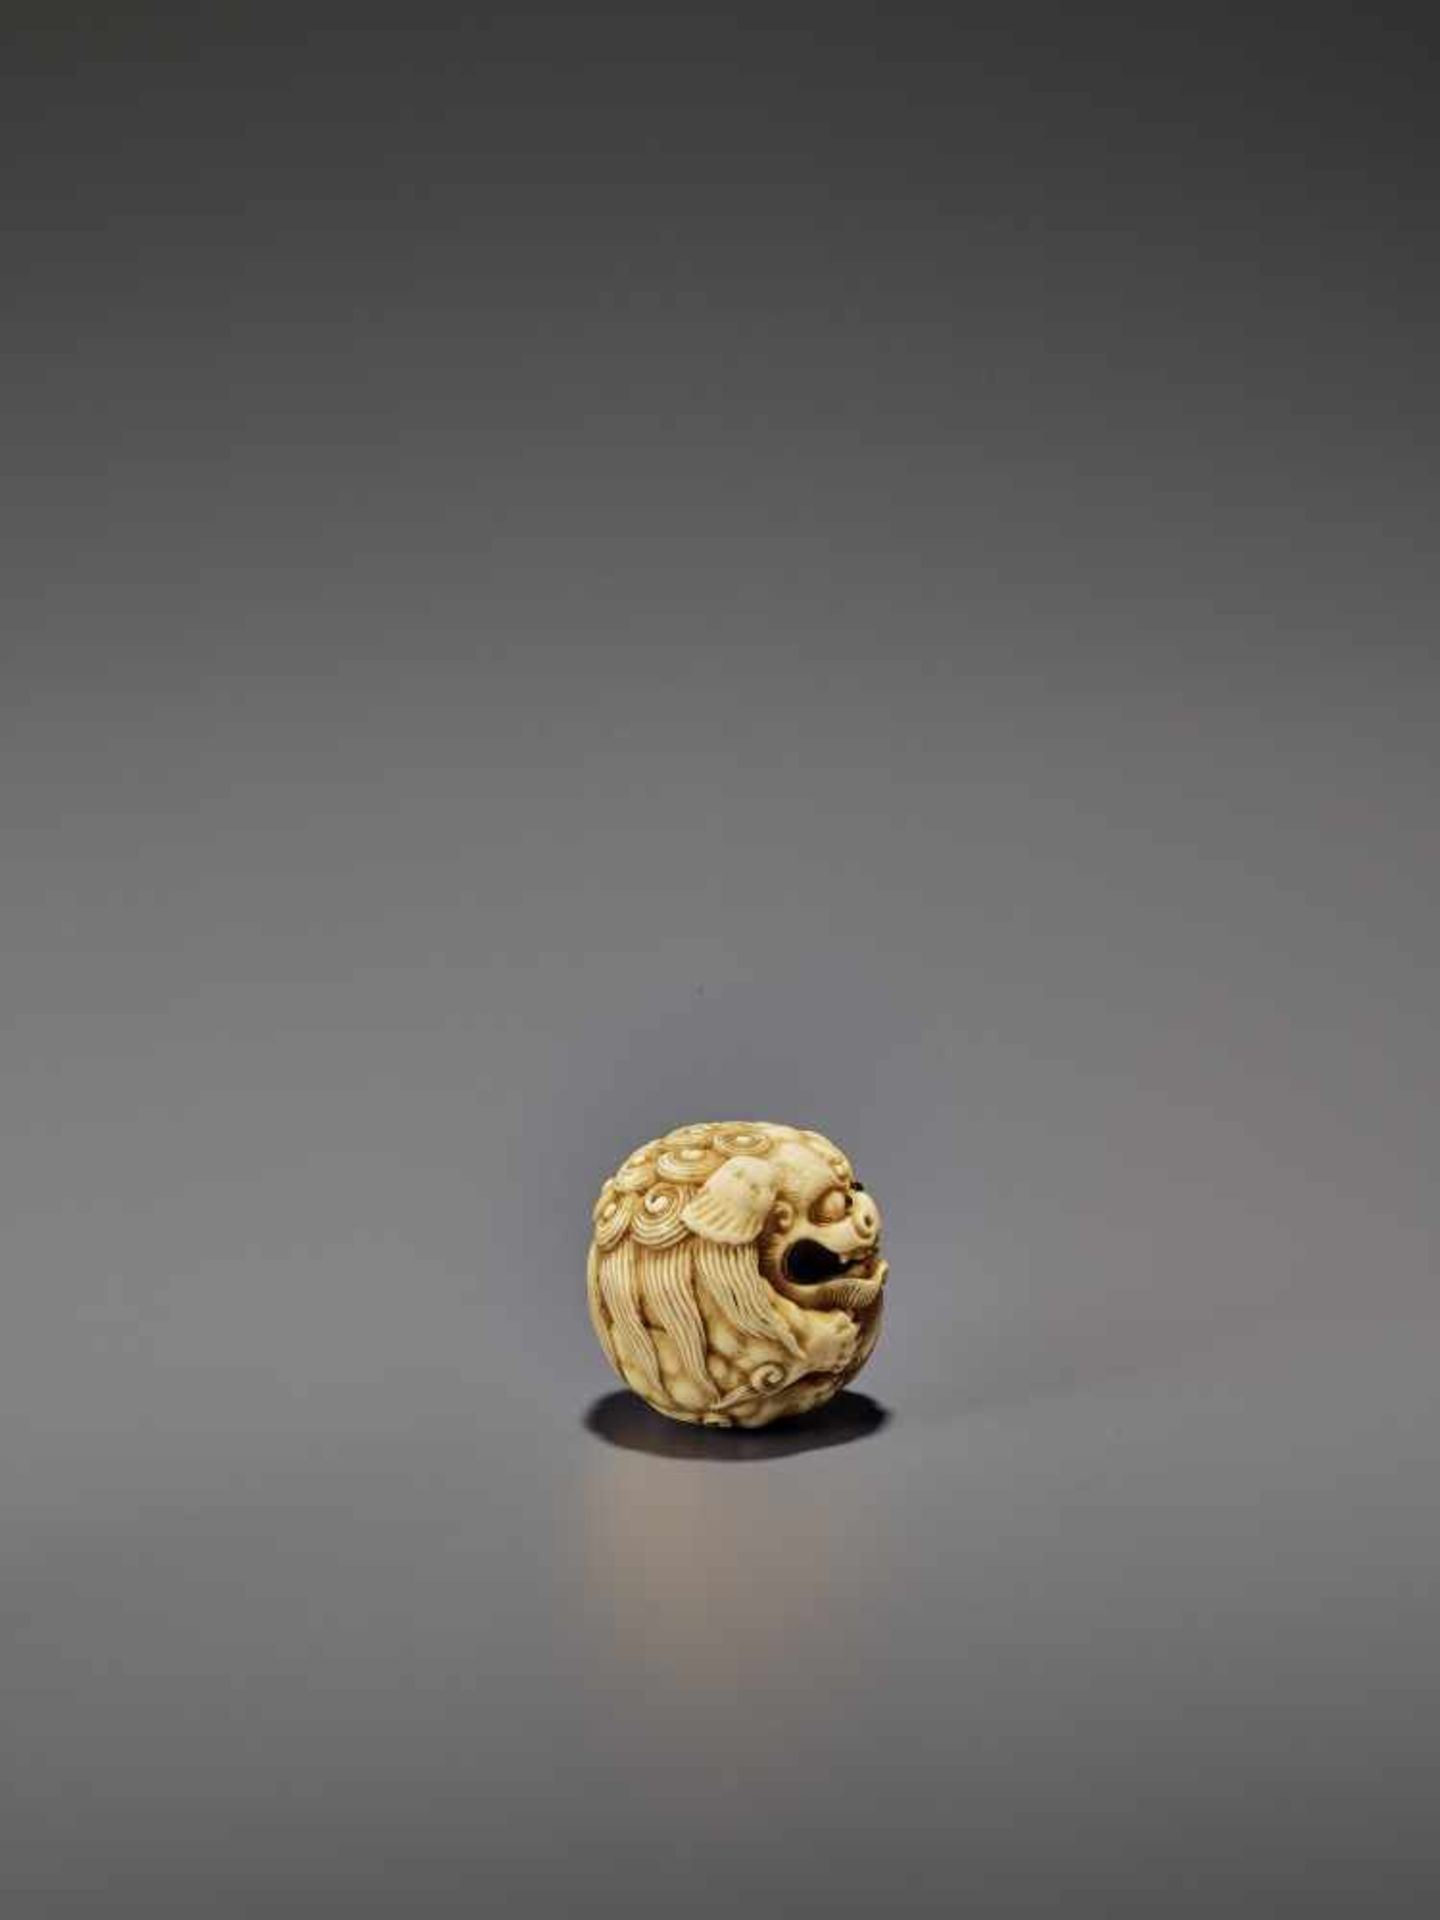 AN IVORY NETSUKE OF A SHISHI ROLLED INTO A BALL UnsignedJapan, 19th century, Edo period (1615-1868) - Image 7 of 9